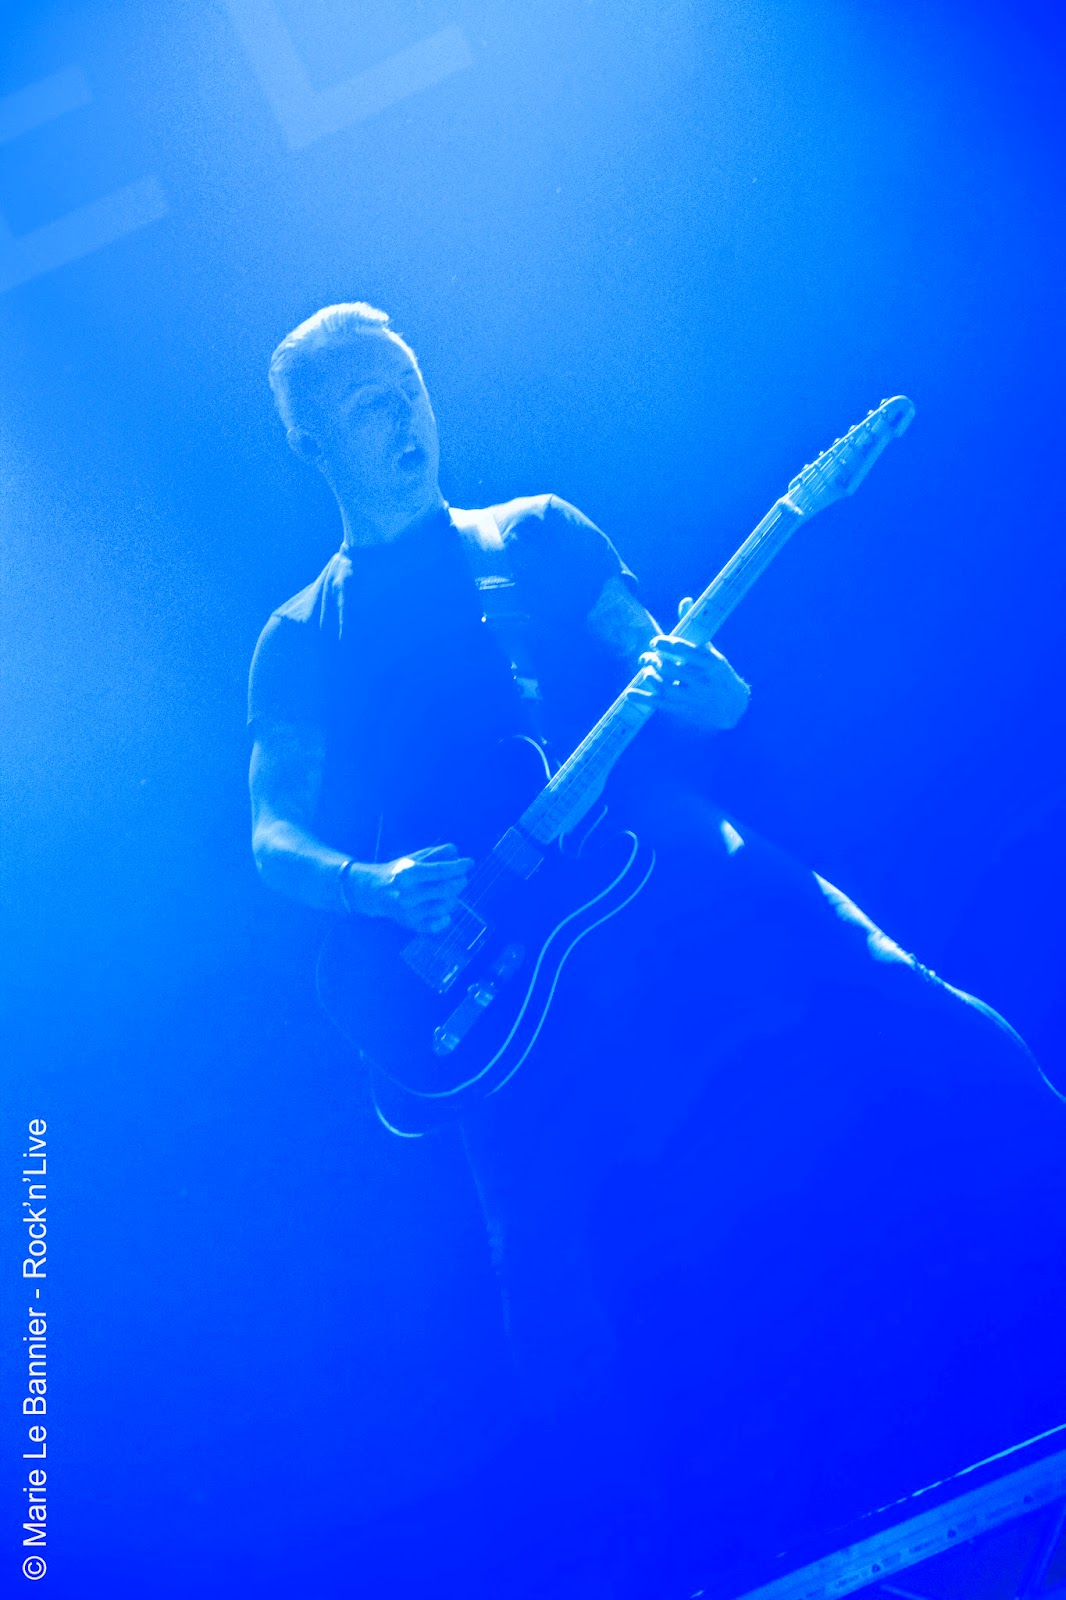 Ryan Key Sean Mackin Yellowcard Lift a Sail Ocean Avenue Cigale Paris Live Report Concert Rock Punk Rock Pop